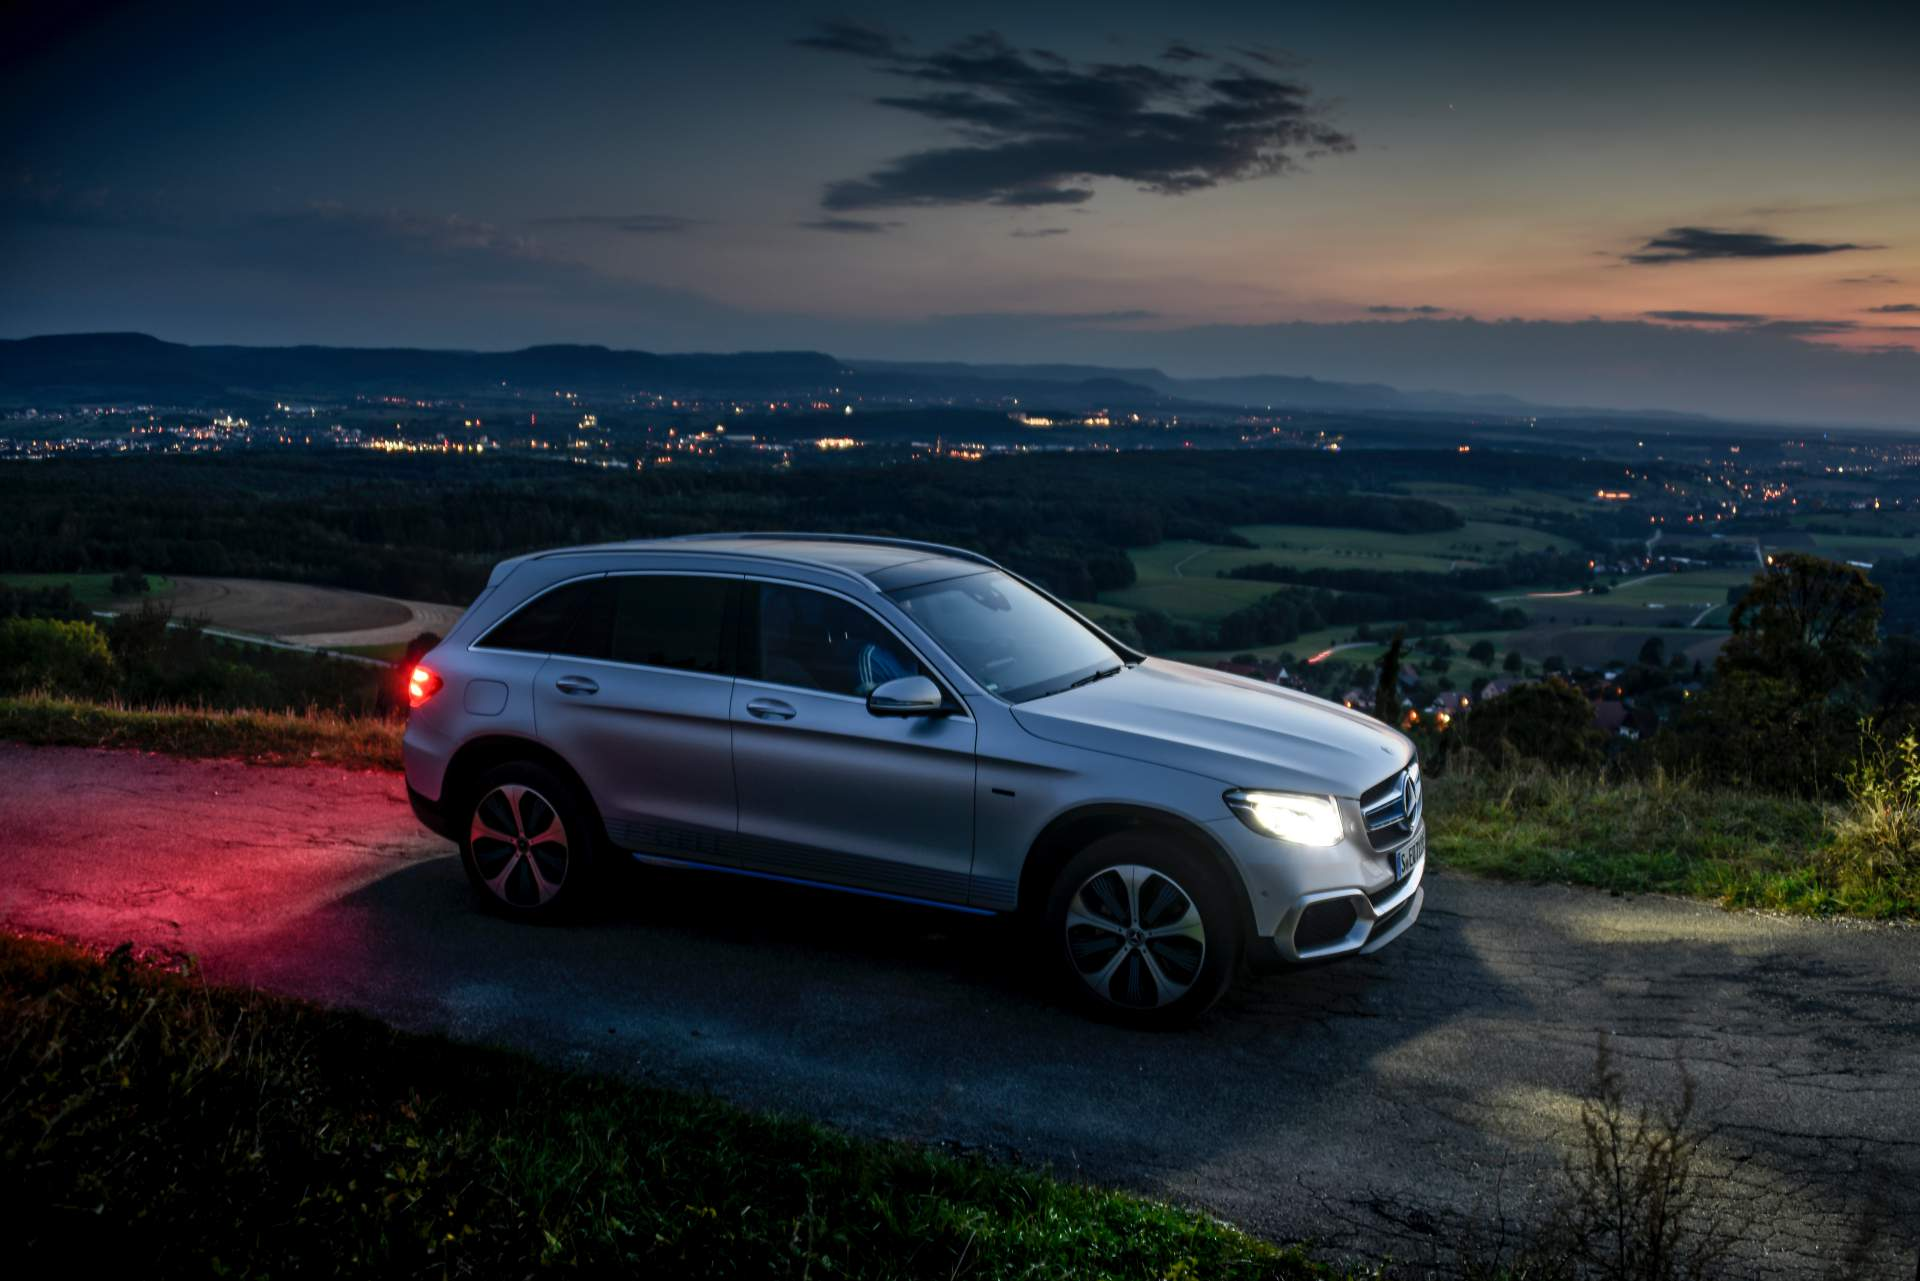 2019_Mercedes_GLC_F-Cell_0080